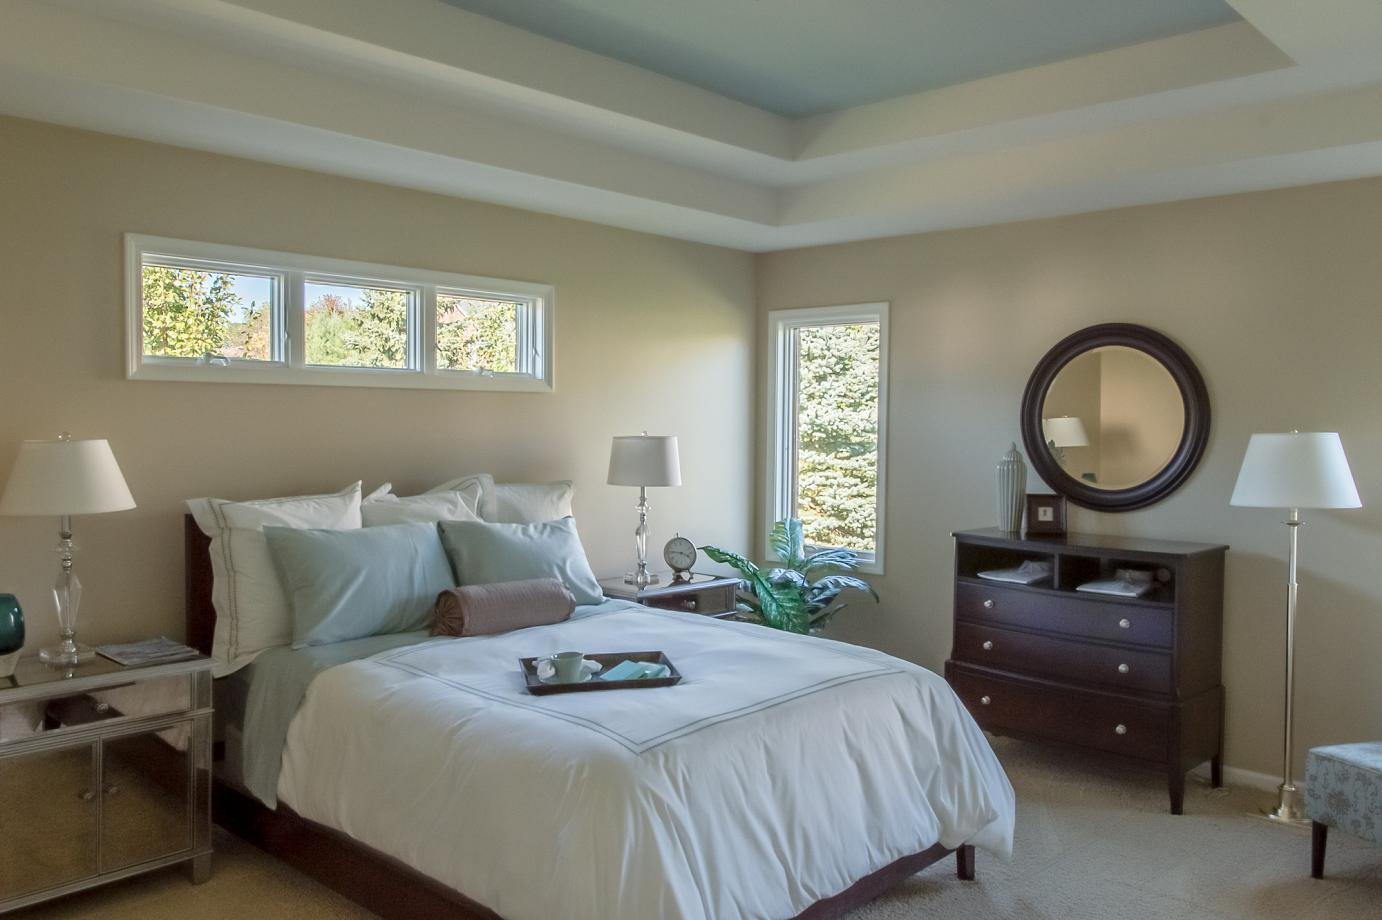 Bedroom featured in the Amberwood By Gallagher and Henry in Chicago, IL